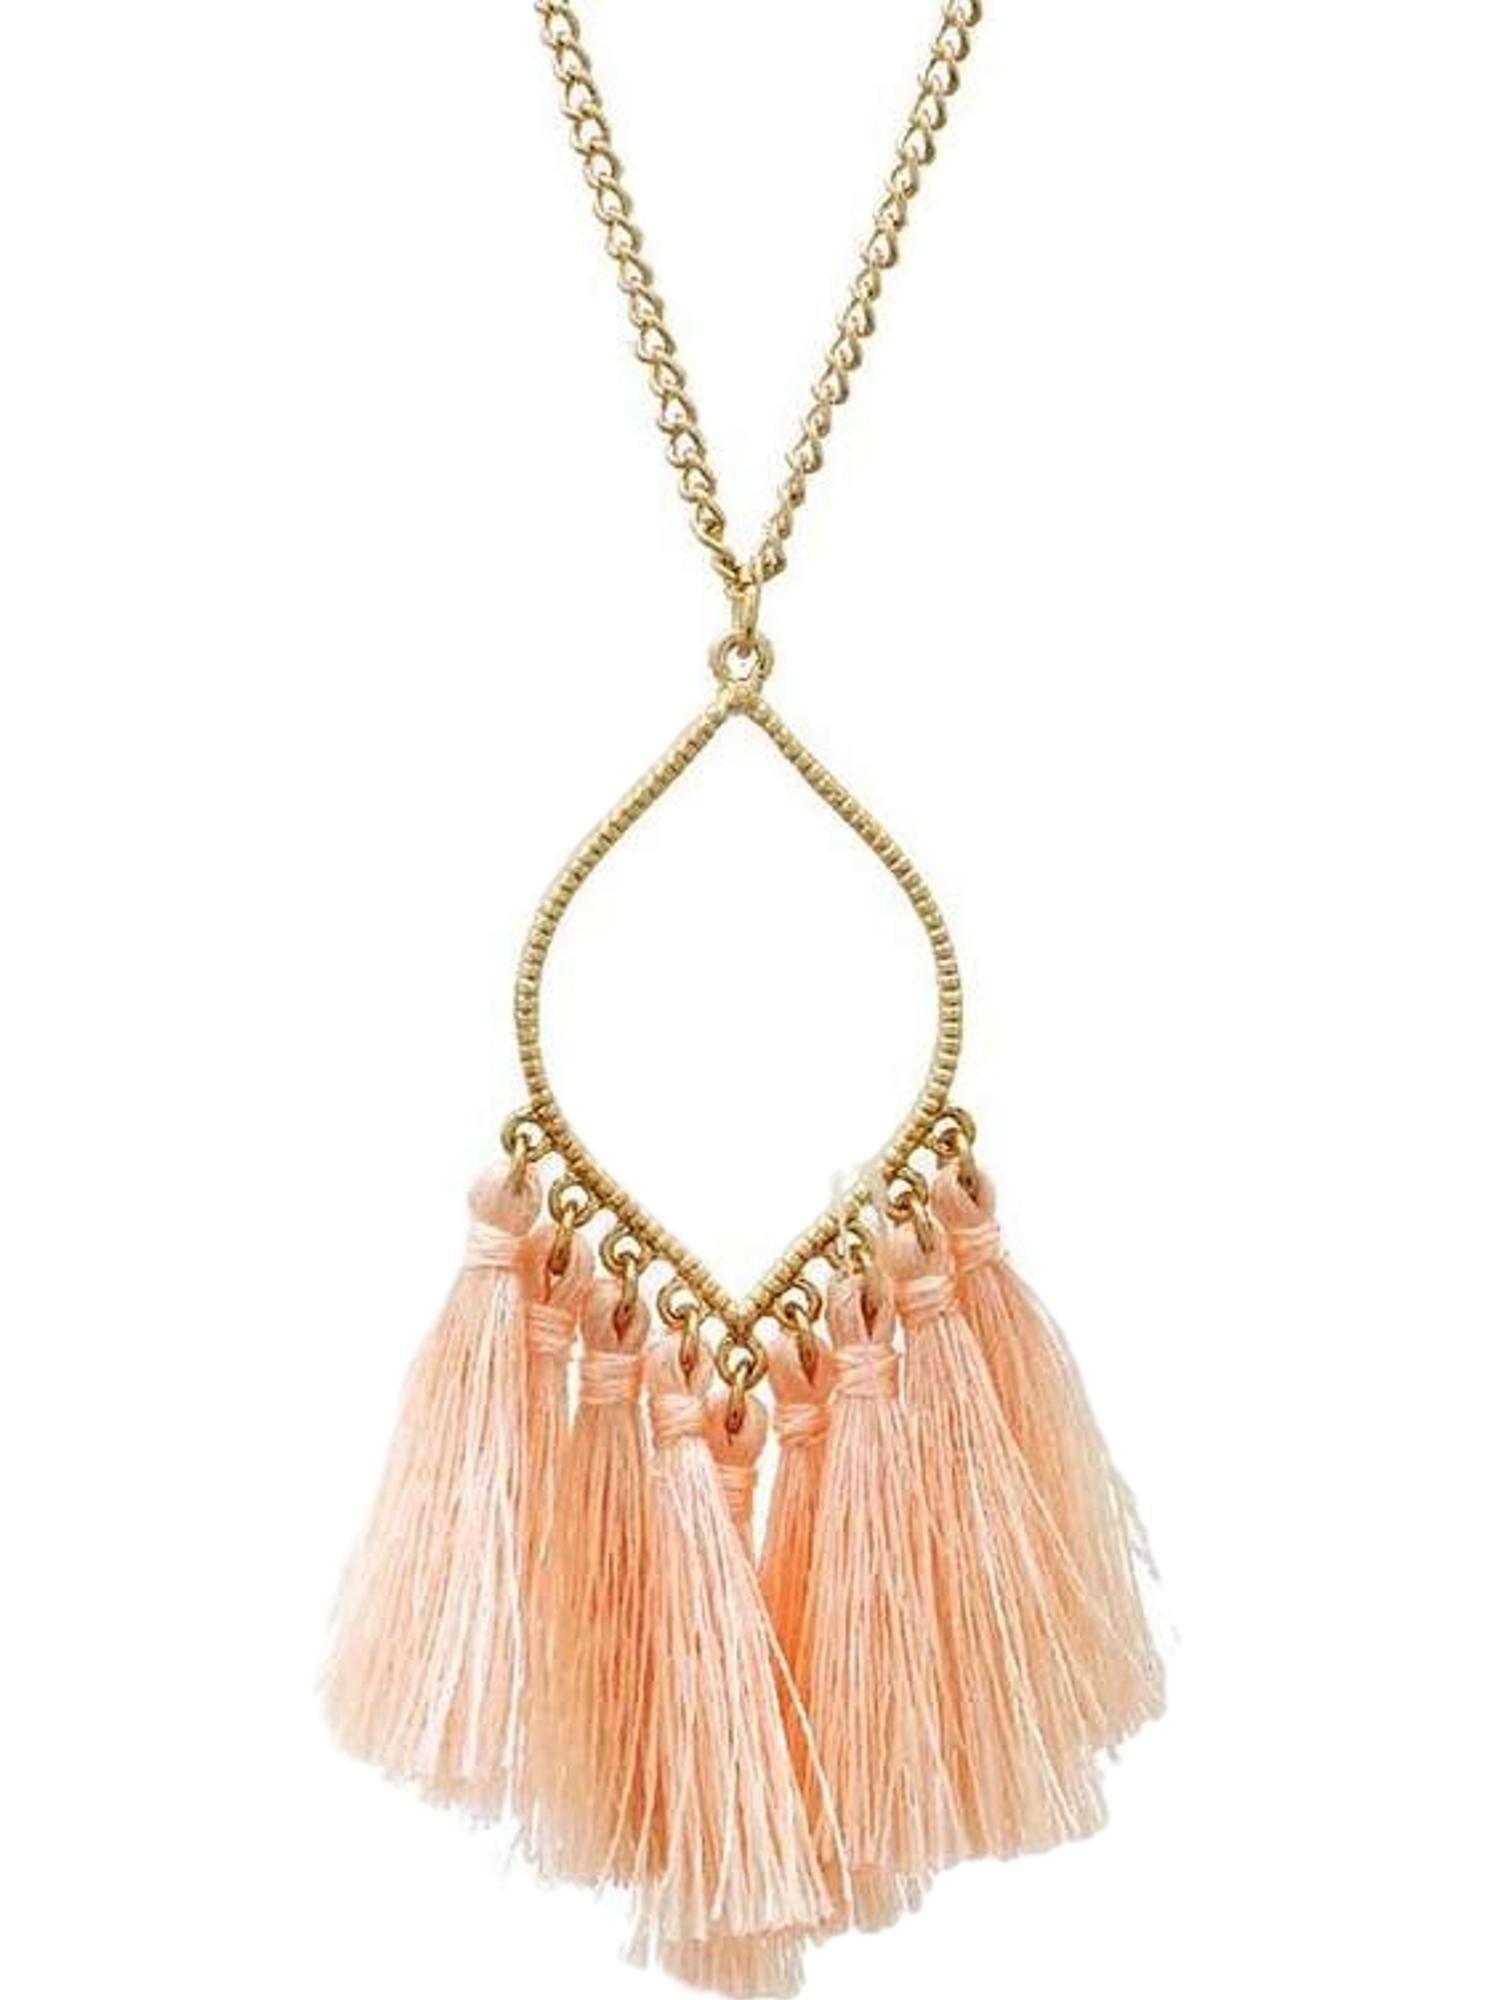 necklace tassel main rsp lewis at com online pdp long buyjohn gold johnlewis john